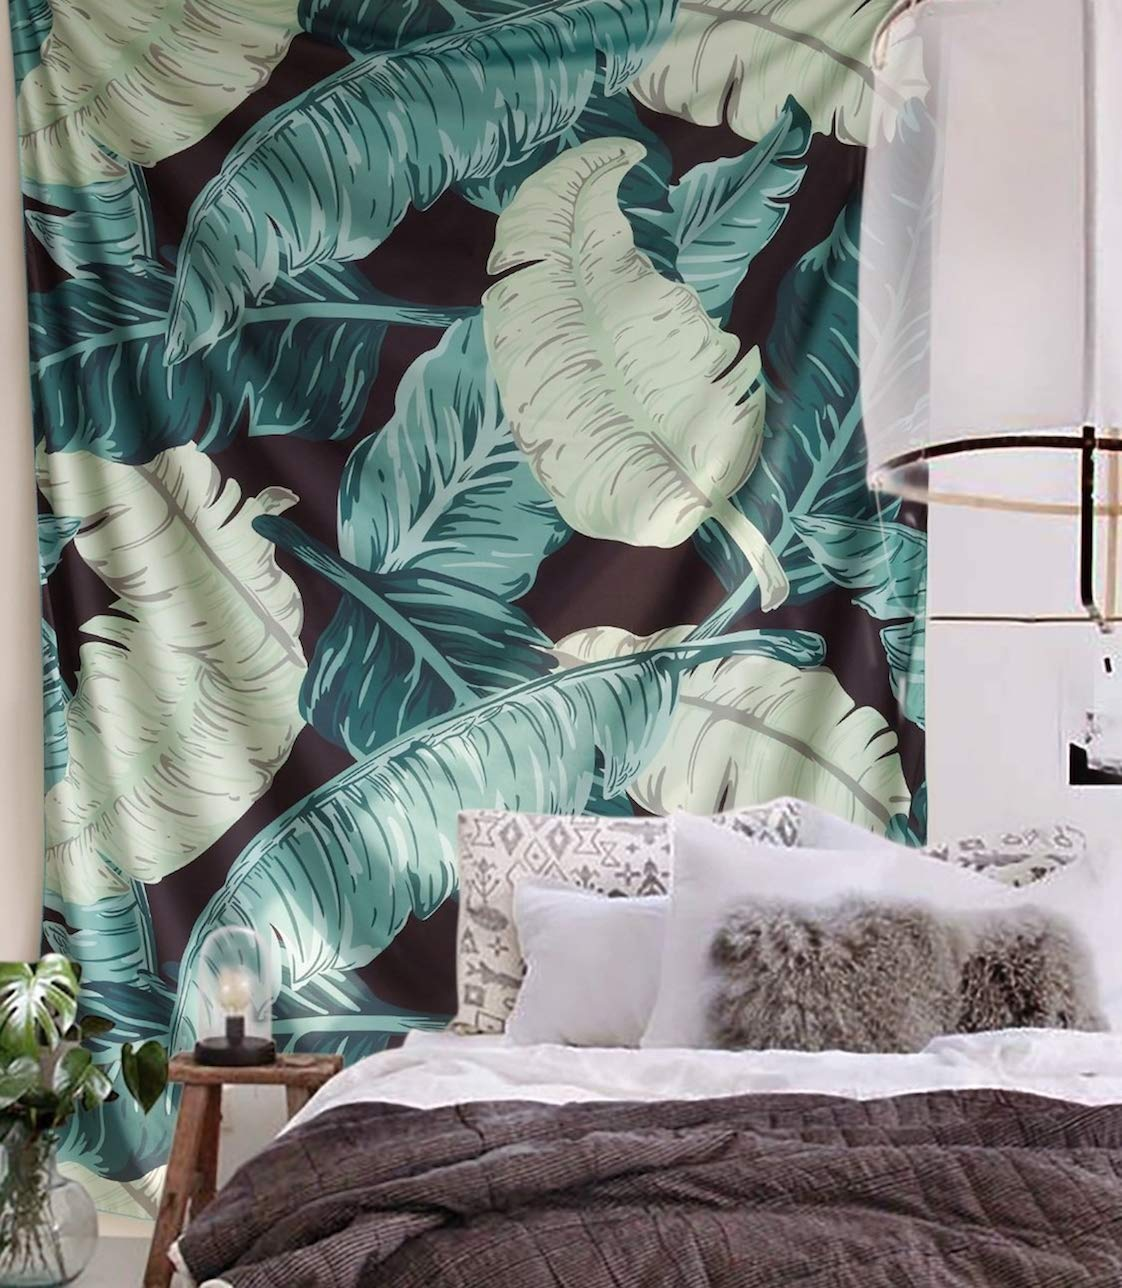 "FLBER Banana Leaf Wall Tapestry Home Decor,60""x 80"",Twin Size - IMPORTANT NOTE: when placing order, please select seller "" Flber Outlet '' which is Fulfilled by Amazon.We offer tag and card for all our customers service! If you bought fake and shoddy products from other sellers, please return it asap. Lightweight Polyester Fabric.-banana leaf tapestry Size:60 inches x 80 inches, Twin size. - living-room-decor, living-room, home-decor - 71PIUlDOj%2BL -"